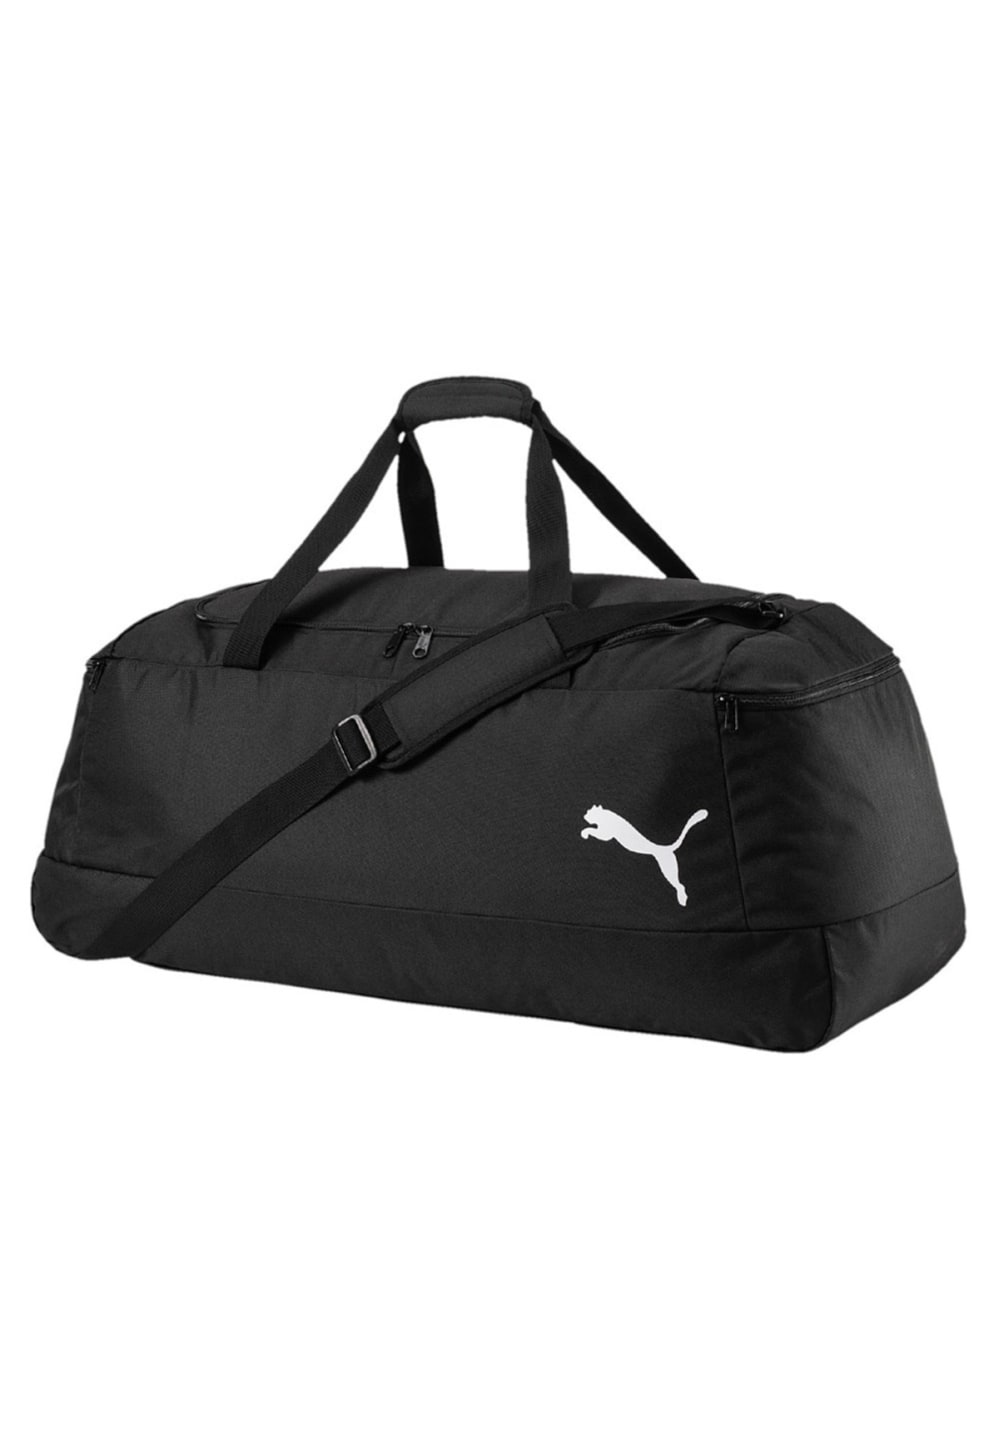 ... Puma Pro Training II Large Bag - Sports bags - Black. Back to Overview.  -50% bcfaf08eea9ce